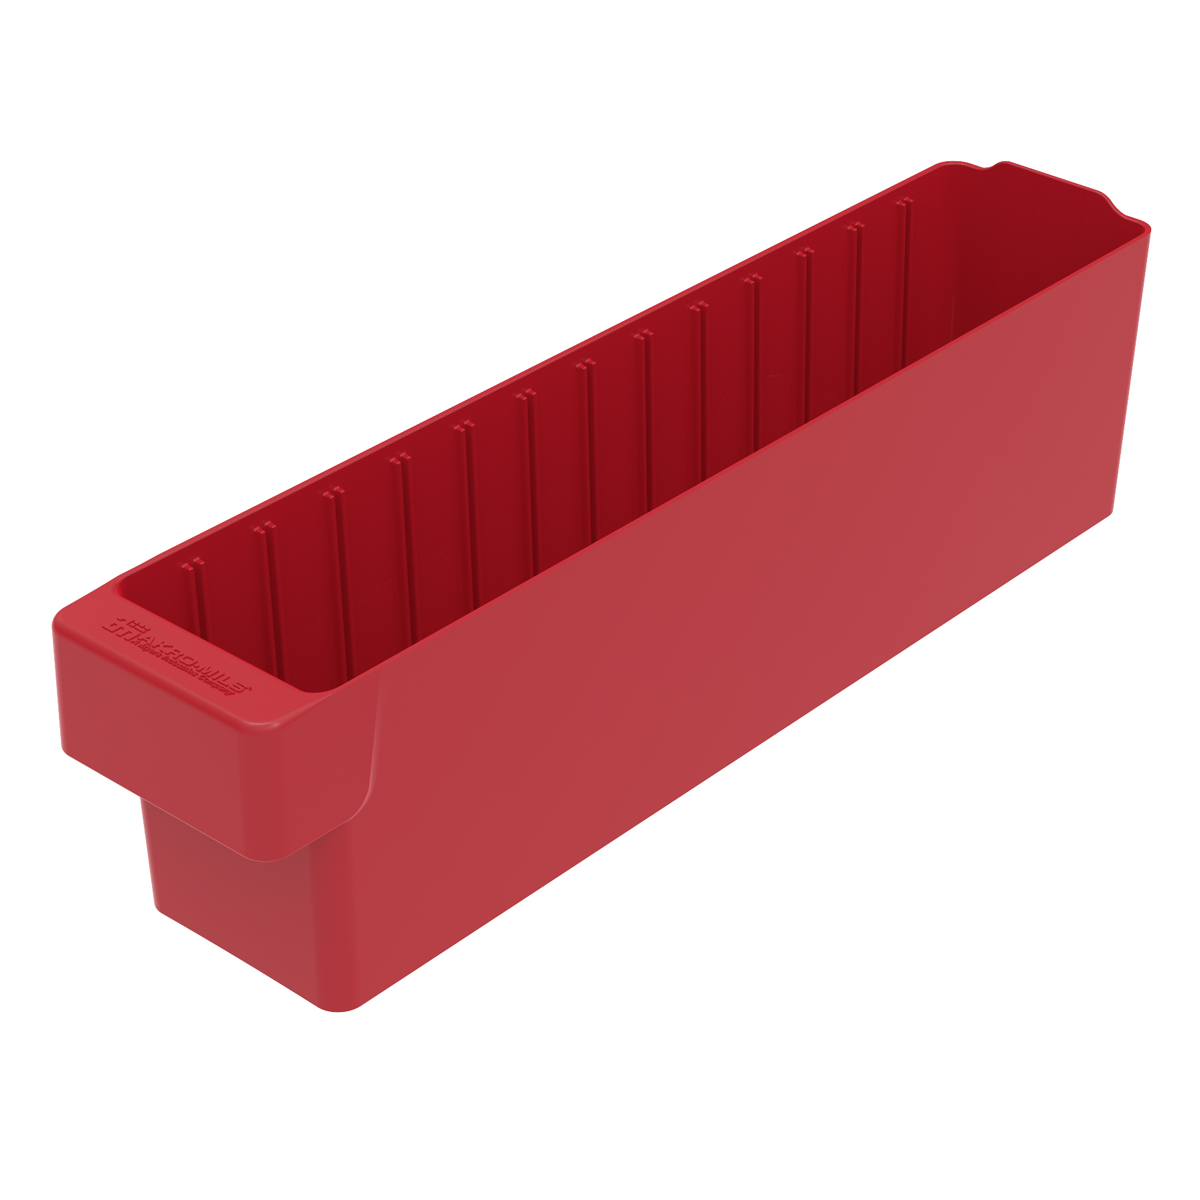 AkroDrawer 17-5/8 x 3-3/4 x 4-5/8, Red (31148RED).  This item sold in carton quantities of 6.